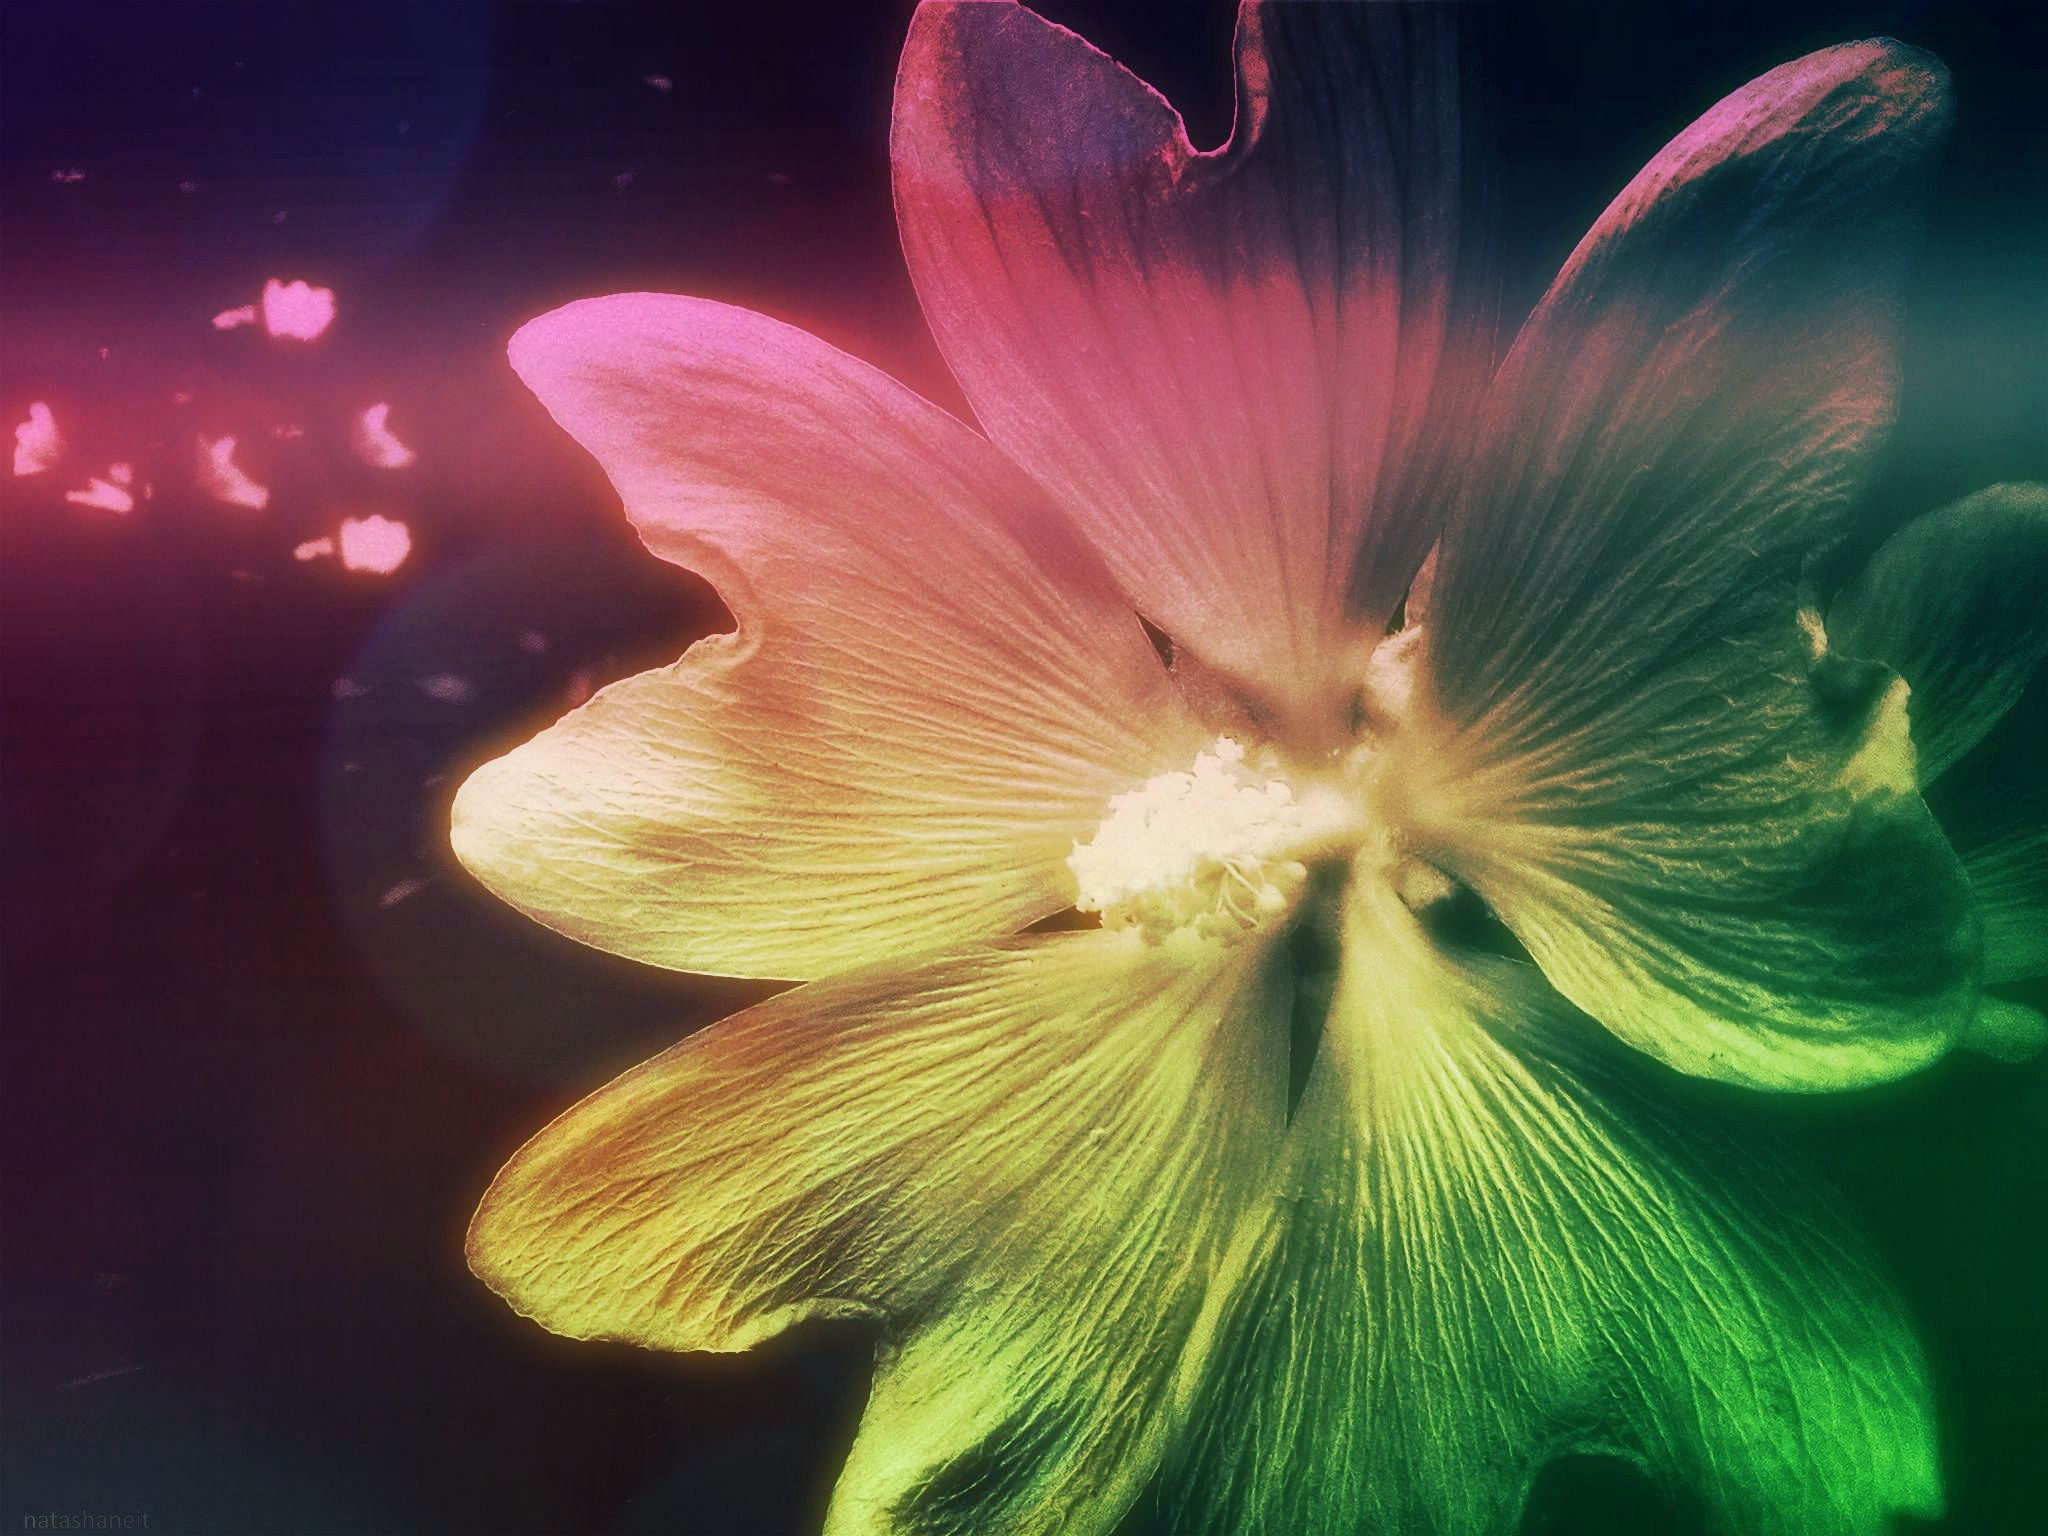 Flower and light-effect by natashaneit